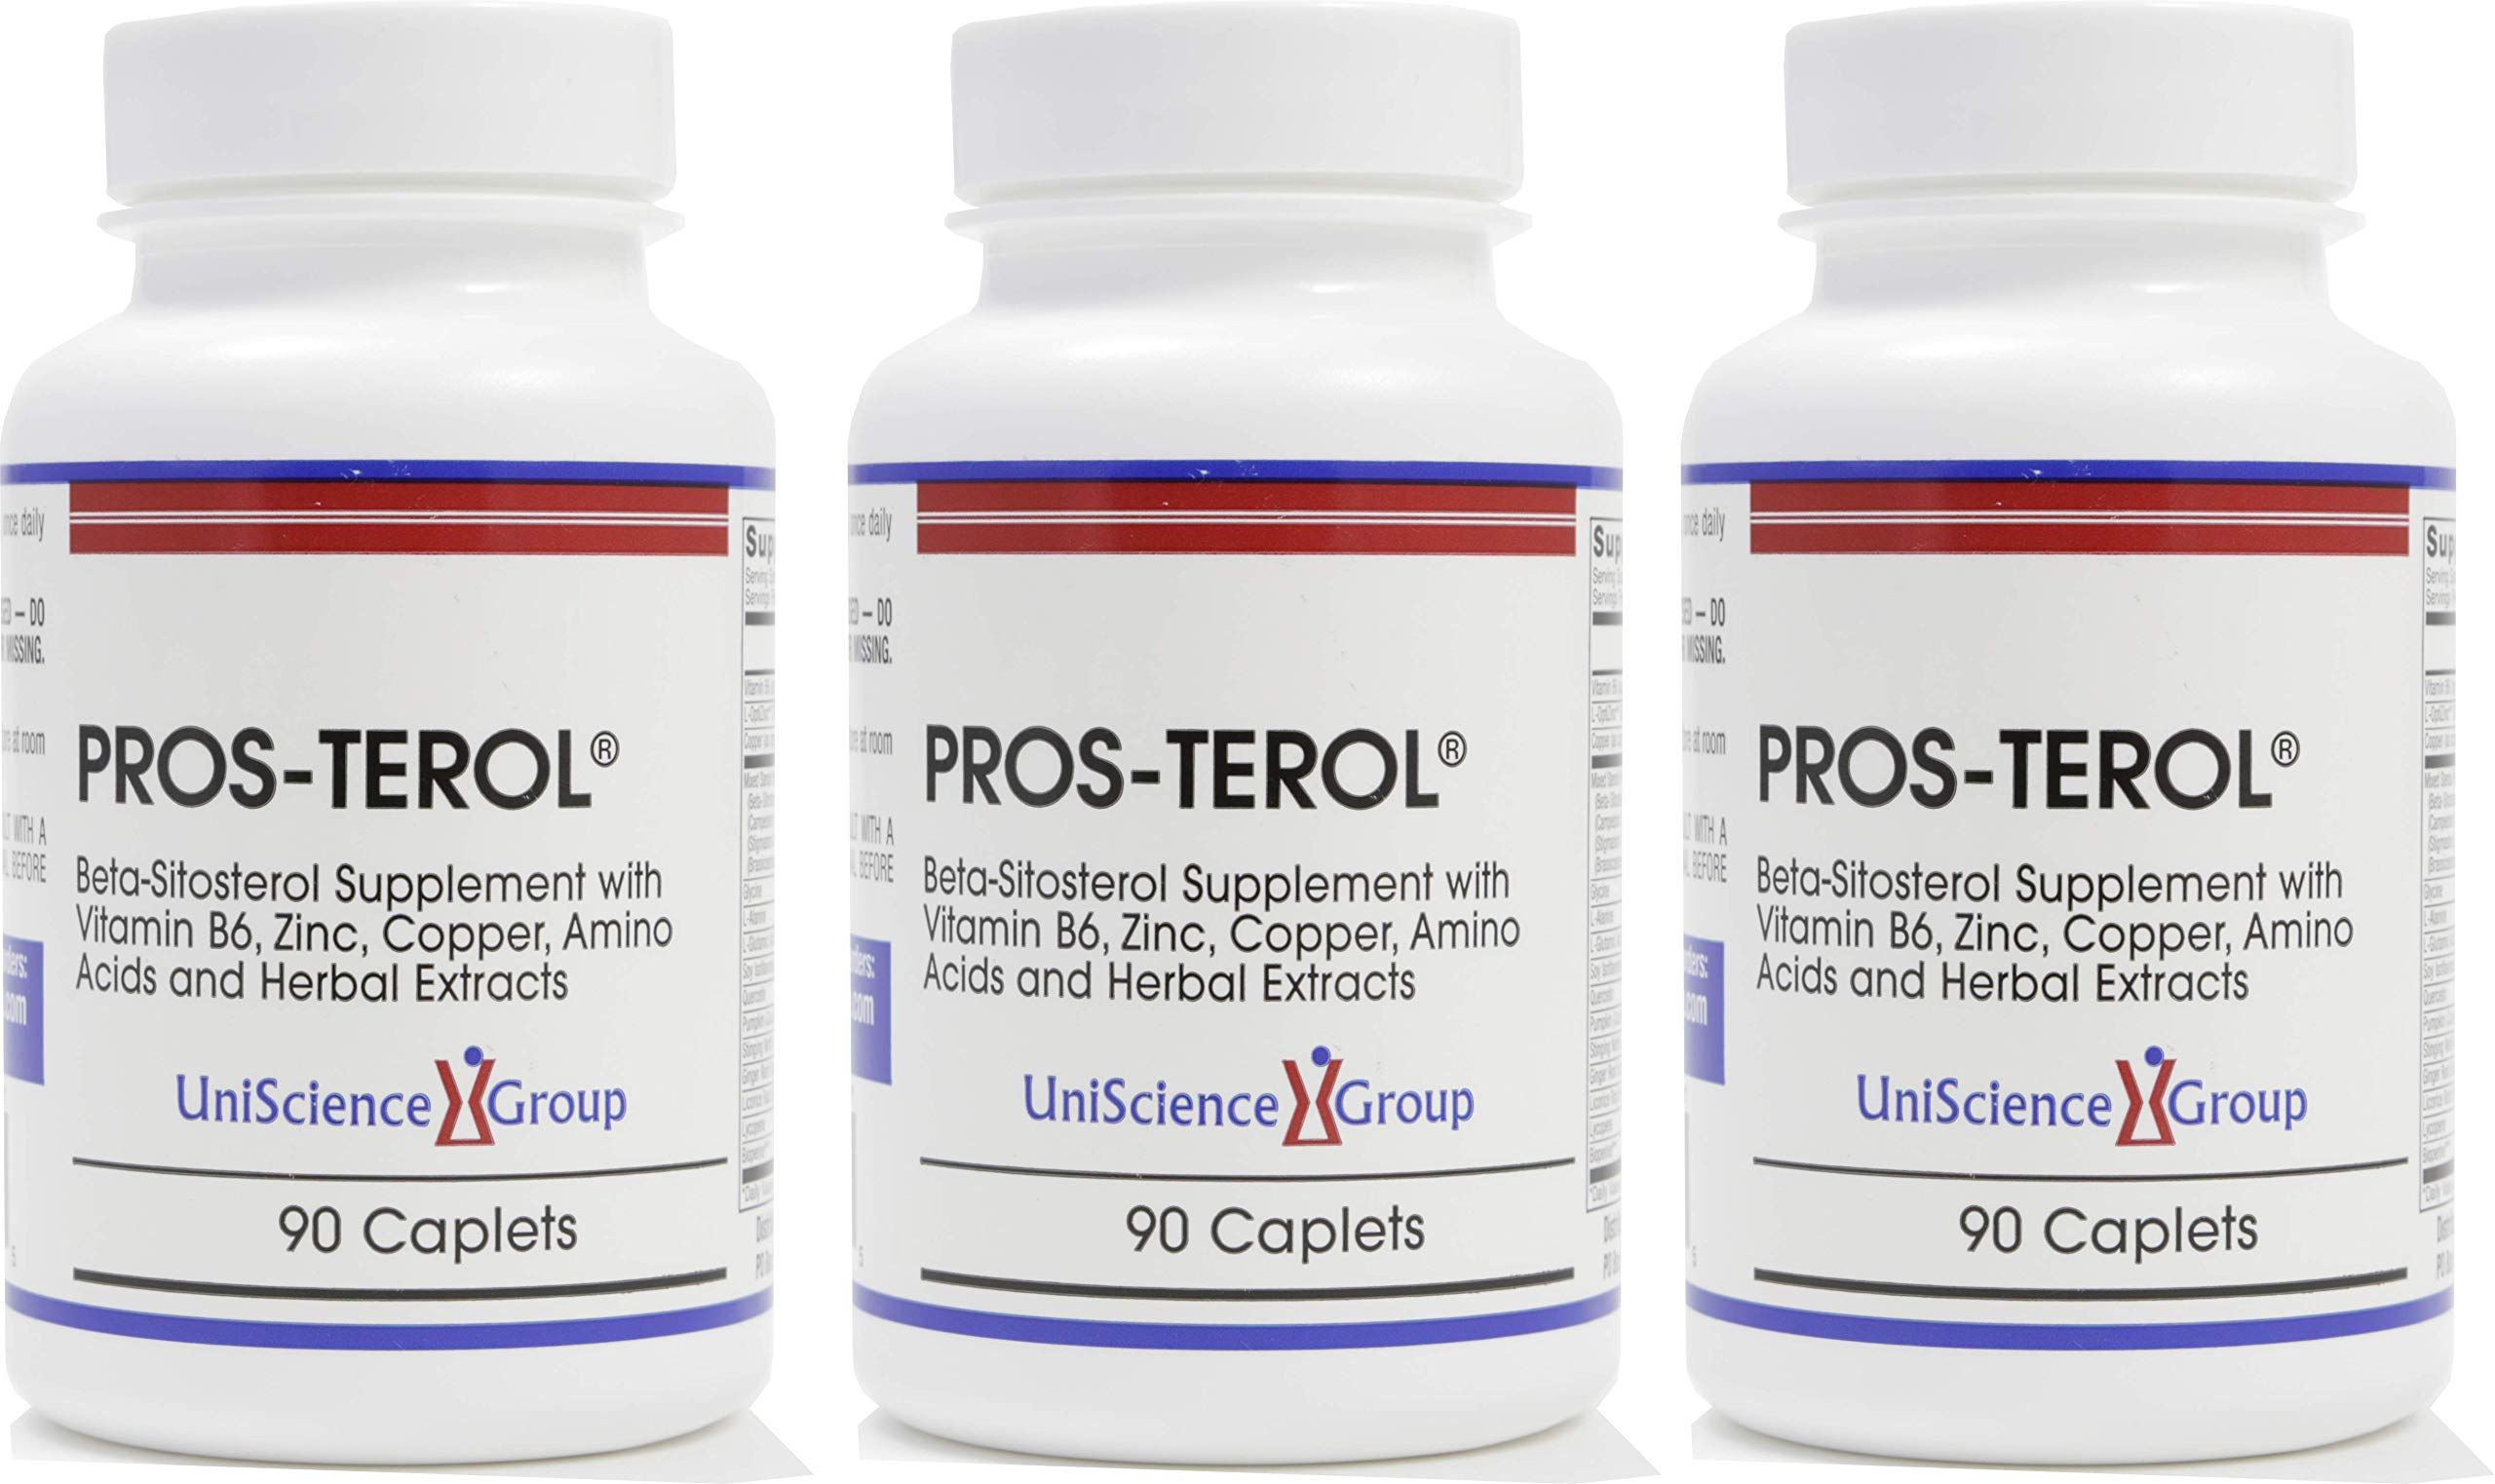 Pros-TEROL (3 bottle kit), Prostate Relief with 900 mg Plant Sterols with Pumpkin Seed, Stinging Nettle Root, Ginger Root, Licorice Root Extracts 90 Caplets by UniScience Group, Inc.